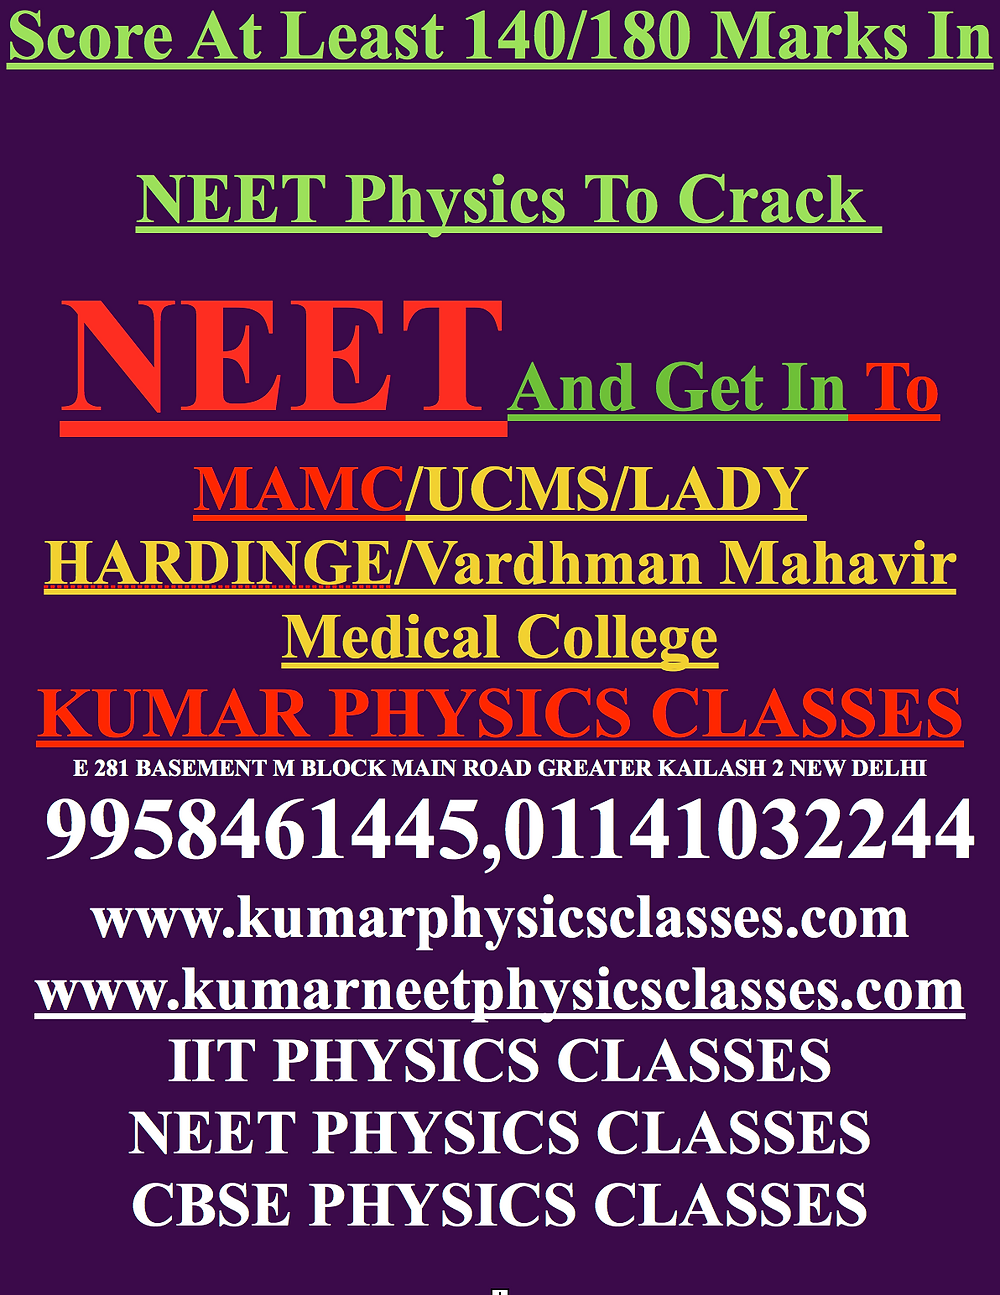 Score At Least 140/180 MarksScore At Least 140/180 Marks In NEET Physics To Crack  NEETAnd Get In To MAMC/UCMS/LADY HARDINGE/Vardhman Mahavir Medical College KUMAR PHYSICS CLASSES E 281 BASEMENT M BLOCK MAIN ROAD GREATER KAILASH 2 NEW DELHI  9958461445,01141032244 www.kumarphysicsclasses.com www.kumarneetphysicsclasses.com IIT PHYSICS CLASSES NEET PHYSICS CLASSES CBSE PHYSICS CLASSES